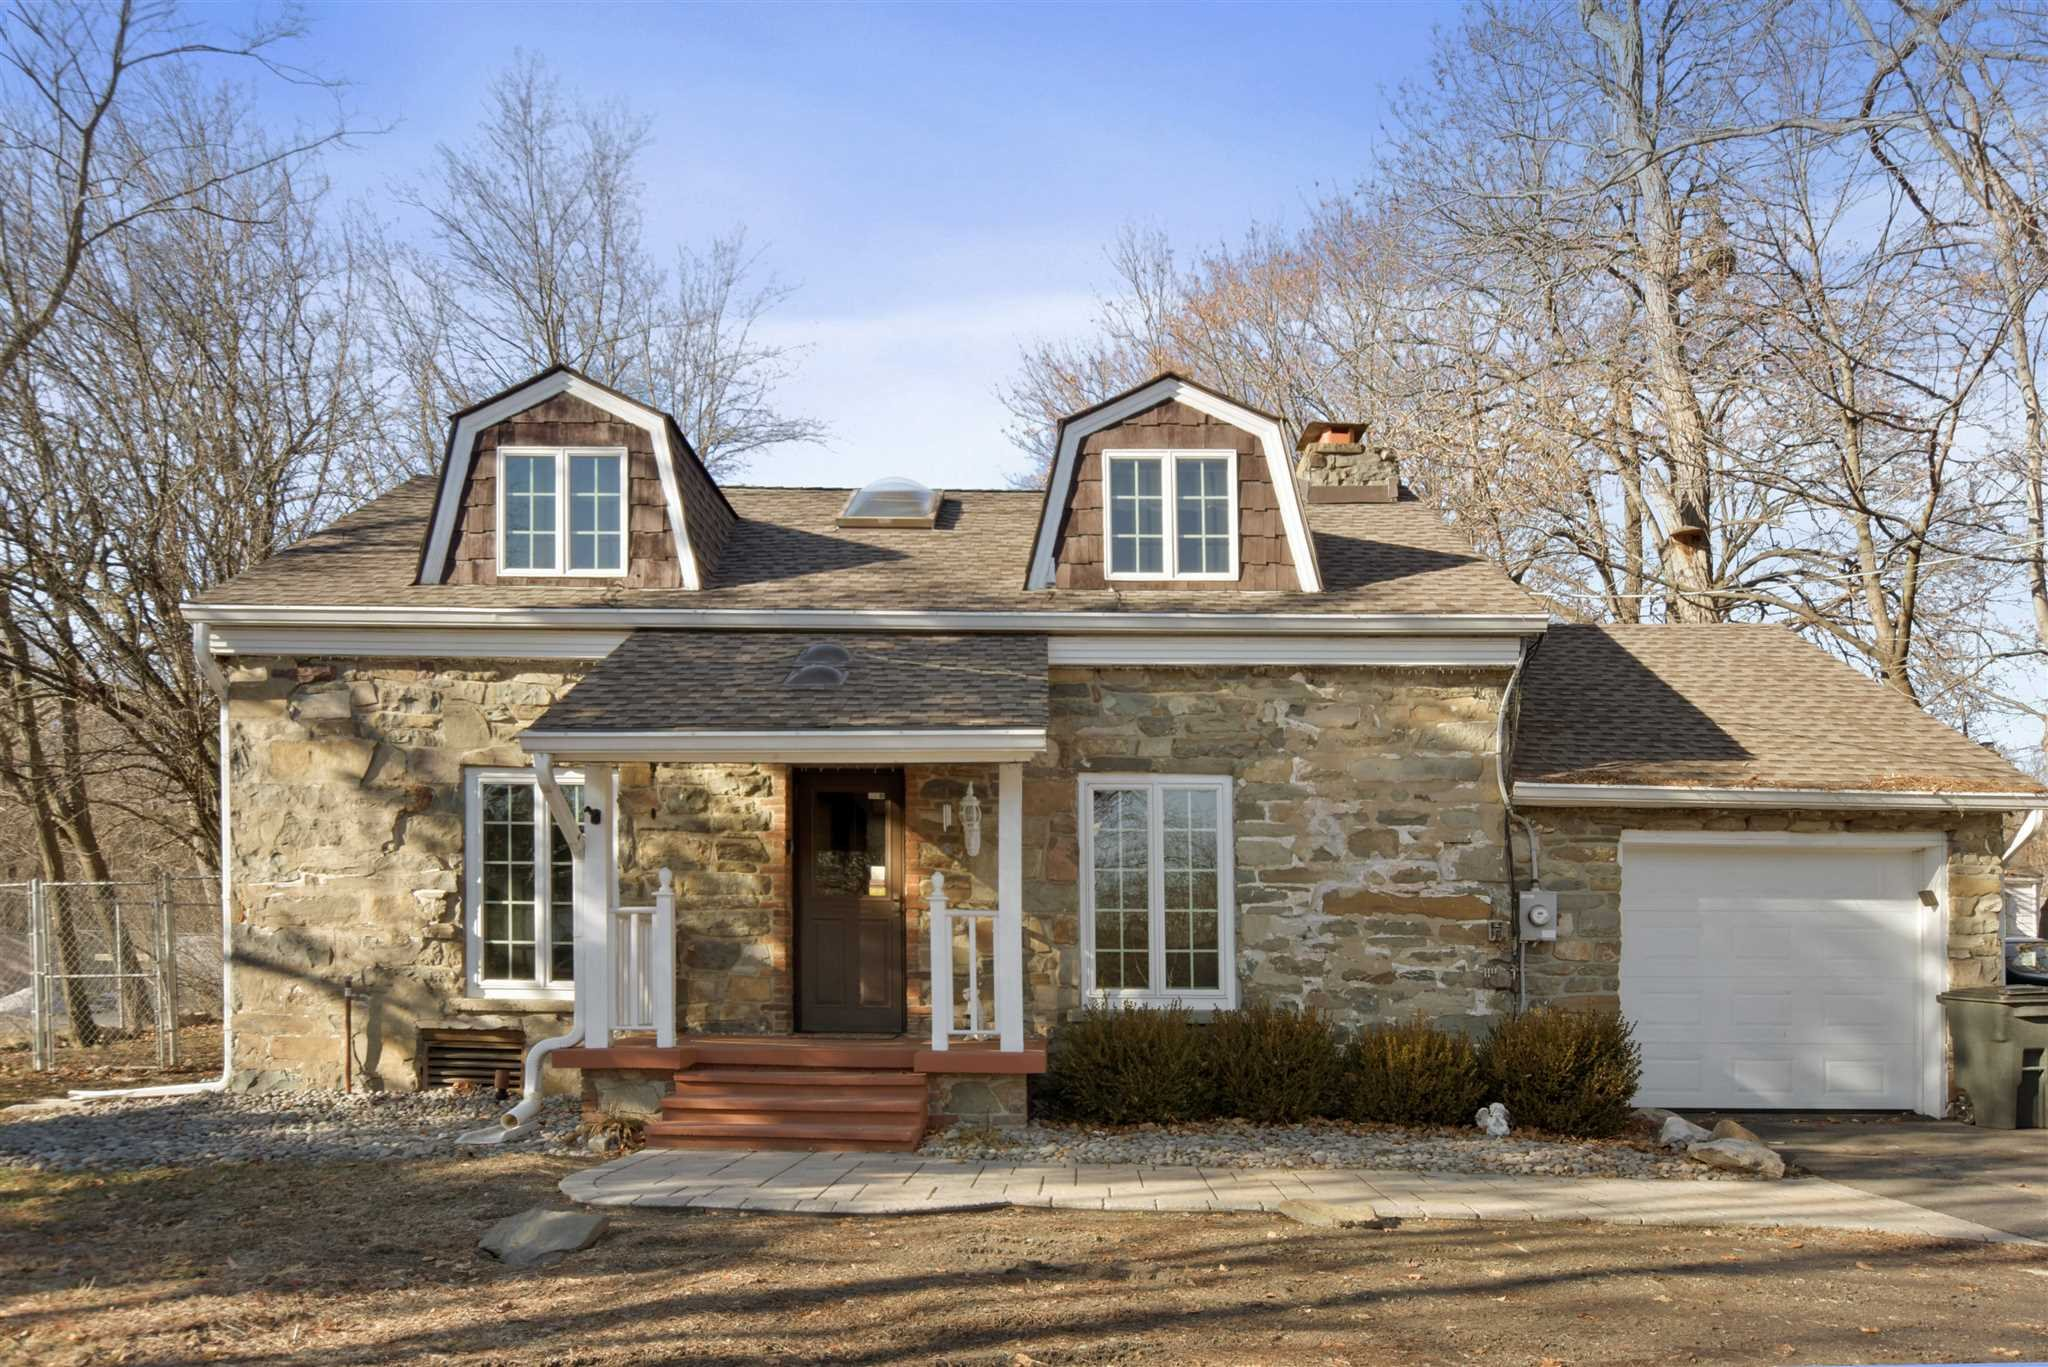 Single Family Home for Sale at 1098 STATE ROUTE 94 1098 STATE ROUTE 94 New Windsor, New York 12553 United States